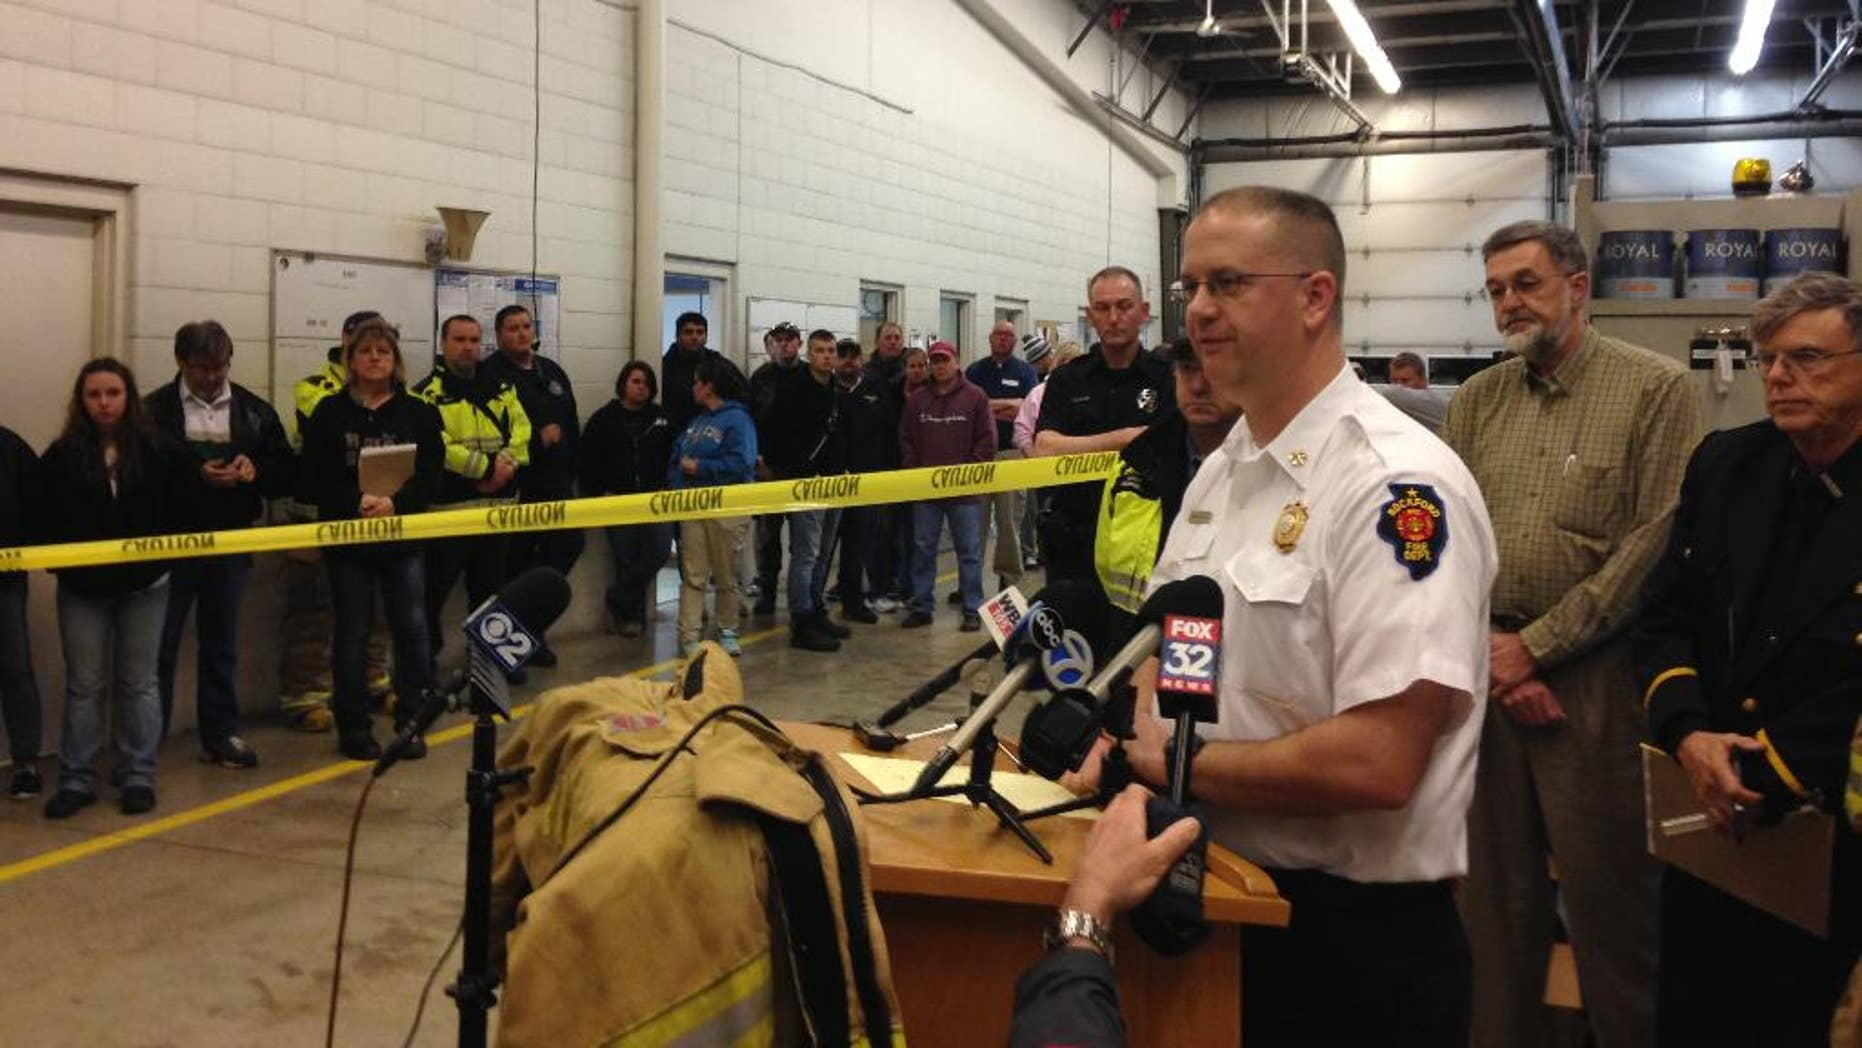 Rockford Fire Department Division Chief Matthew Knott speaks Friday April 10, 2015 at a news conference in Kirkland Illinois about the tornado that hit the small community of Fairdale Illinois on Thursday. Knott  said one person, a 67-year-old woman, died and seven people were injured. The tornado impacted all of the roughly 50 homes in Fairdale, destroying many of them. (AP Photo/Sara Burnett)